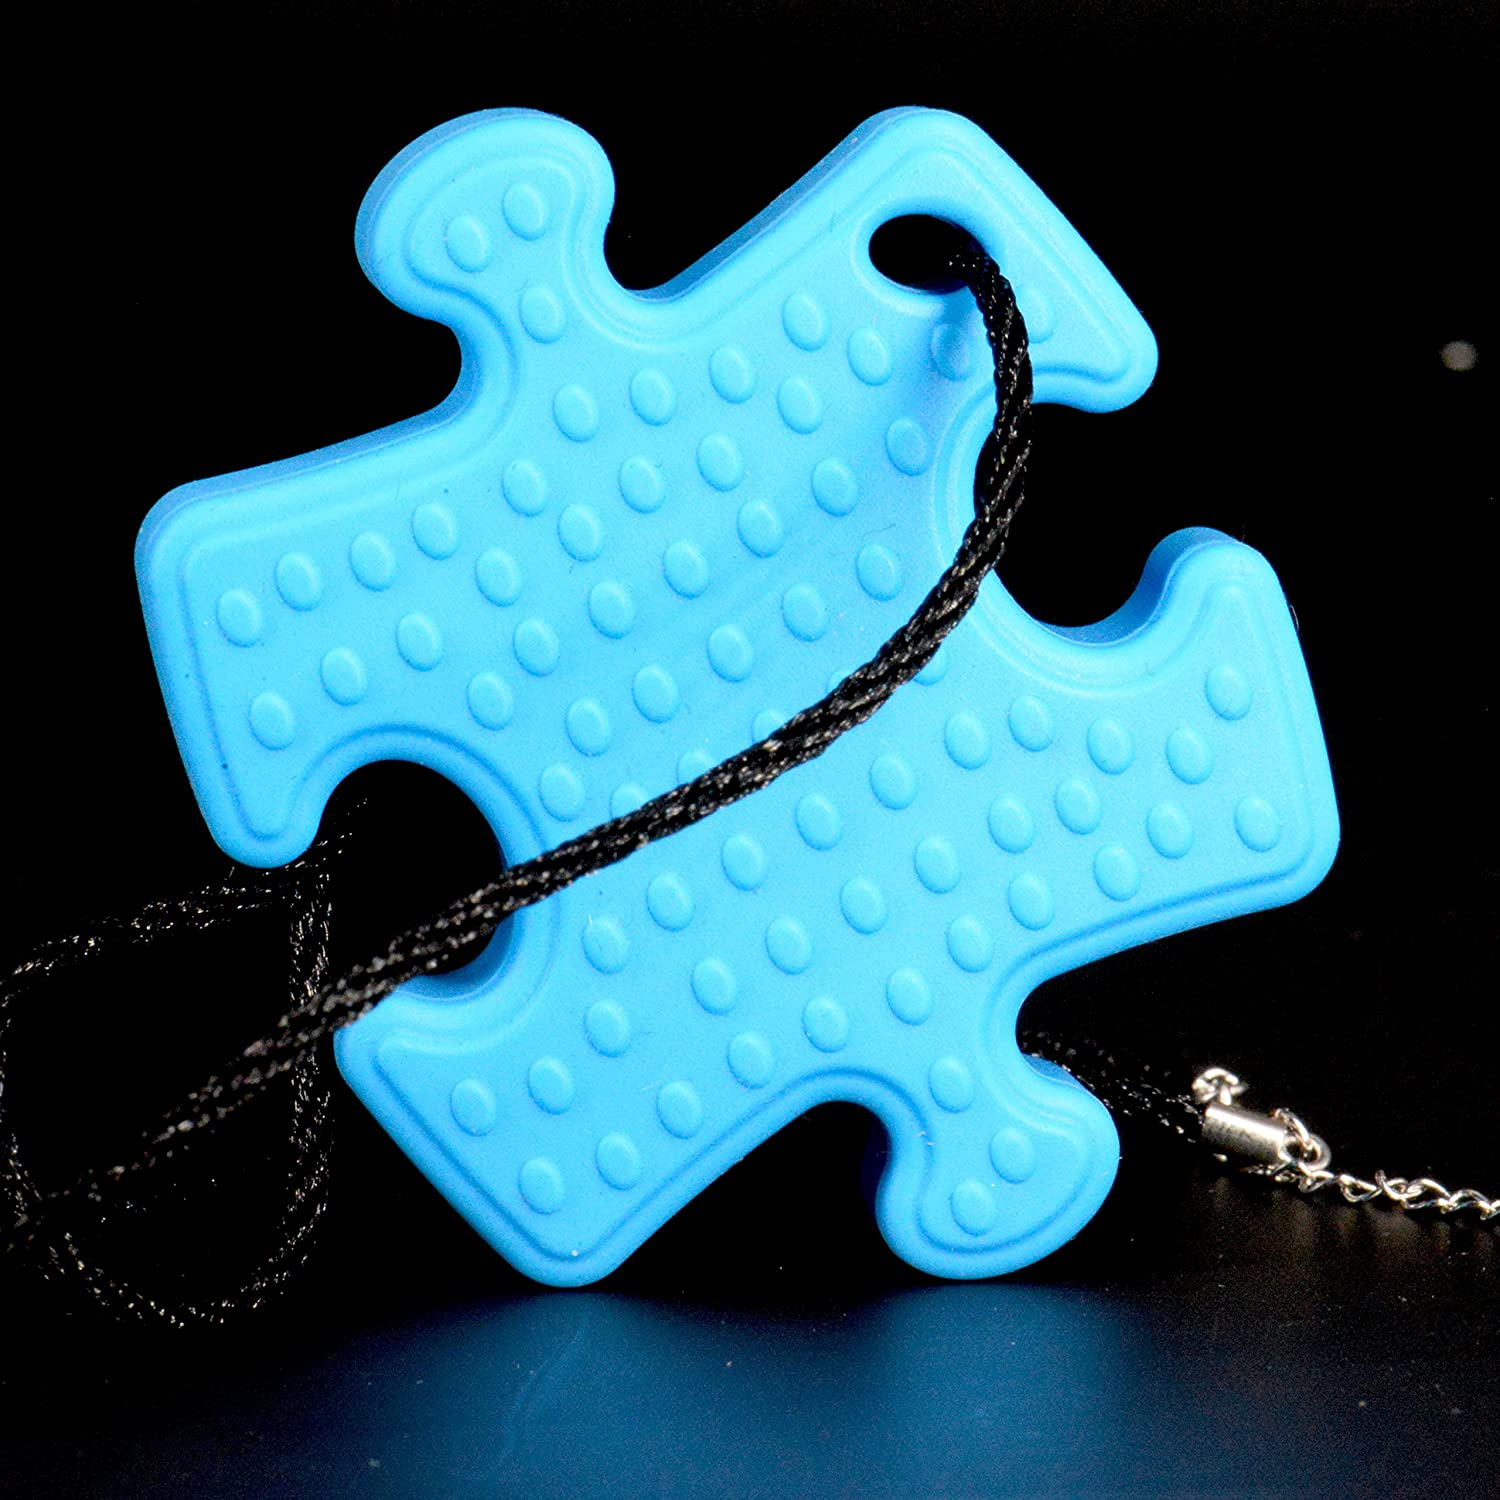 Puzzle Piece Necklace Chess Piece Pencil Topper 1 ADHD // Autism // High-Activity who need Fidget Toys 1 - Silicone Bracelet Teething /& Chew Toys for Babies or Kids Yabber HB.YBBR-11-2017-04 1